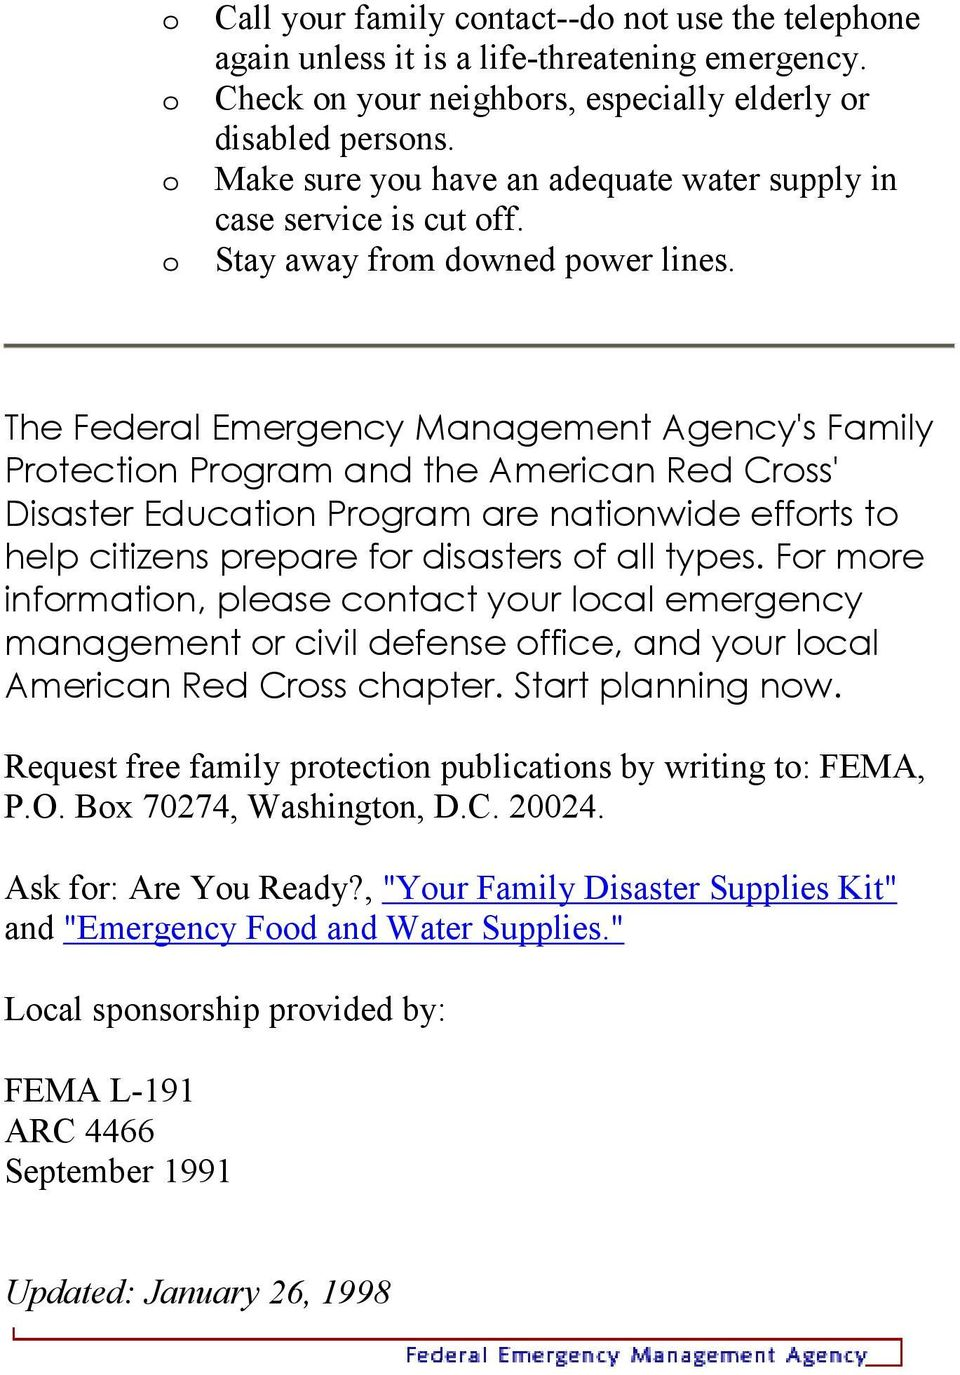 The Federal Emergency Management Agency's Family Protection Program and the American Red Cross' Disaster Education Program are nationwide efforts to help citizens prepare for disasters of all types.